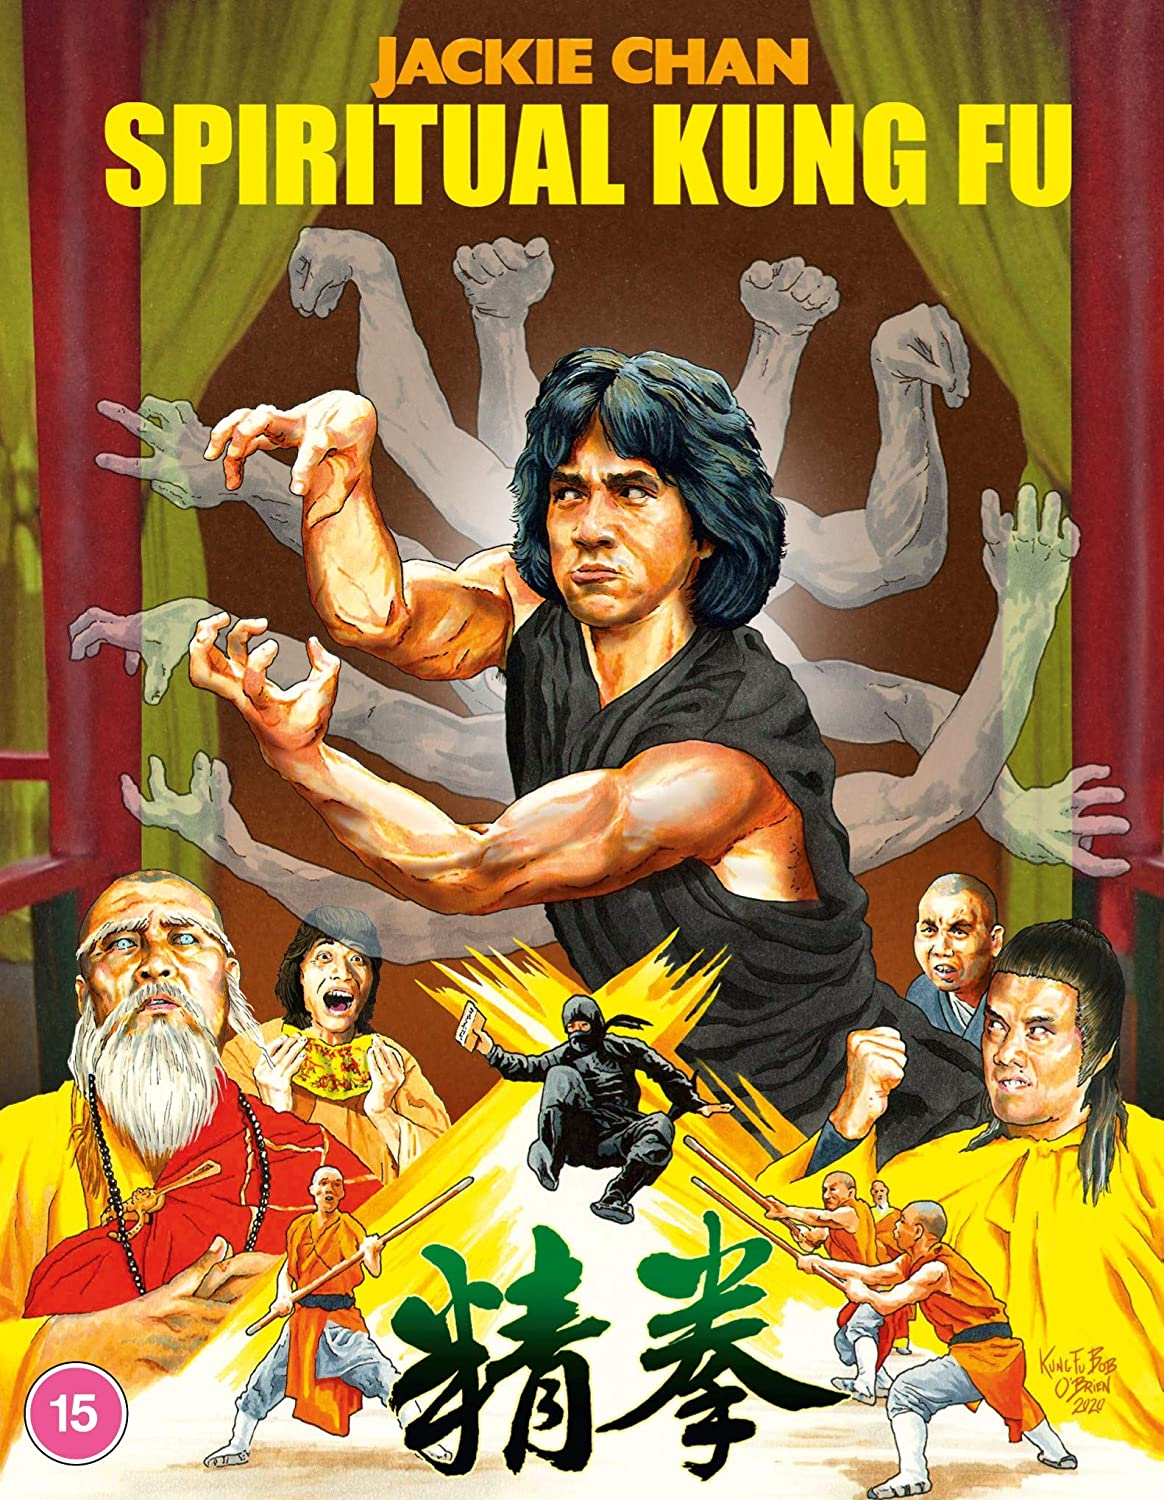 SPIRITUAL KUNG FU Available on Blu-ray & DVD from 88 Films (UK / 26 October)